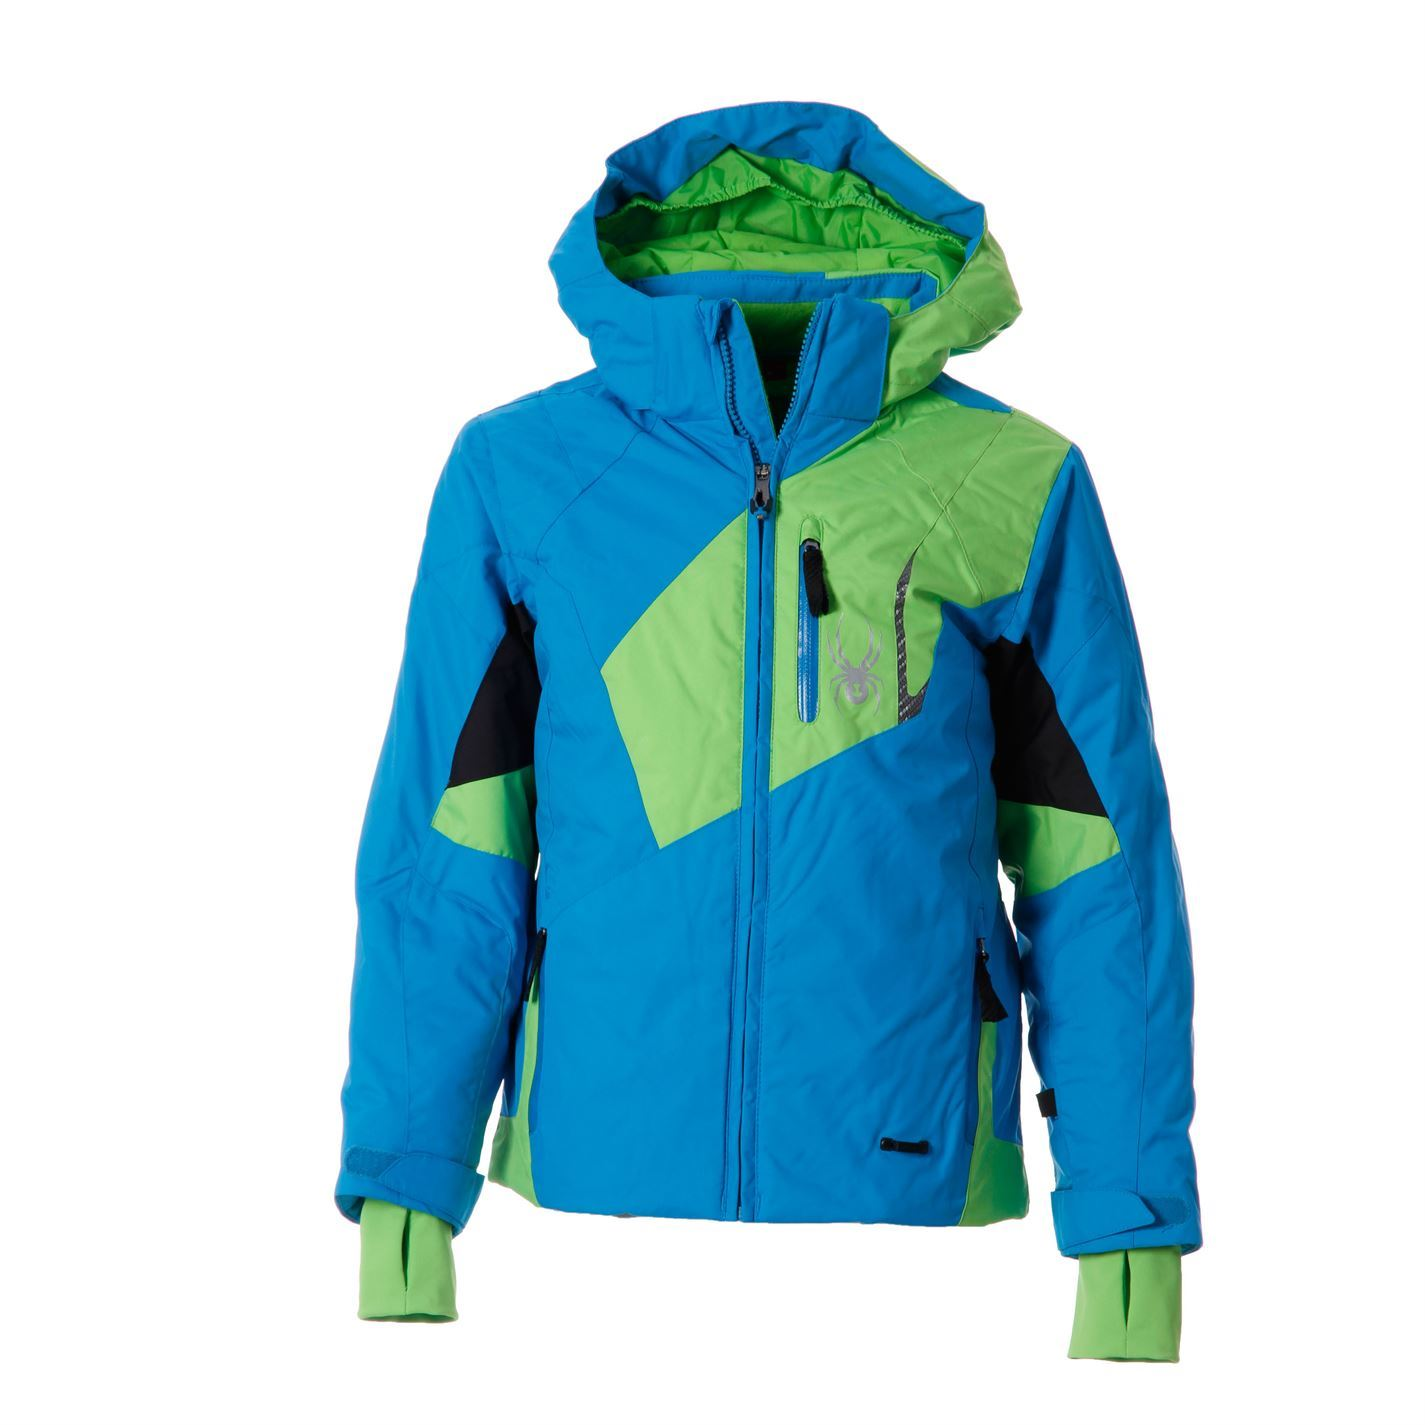 Burton ski jackets range from $ to $ and Spyder jackets range from $ to $, depending on the types of features the jacket offers. Patagonia's insulated .